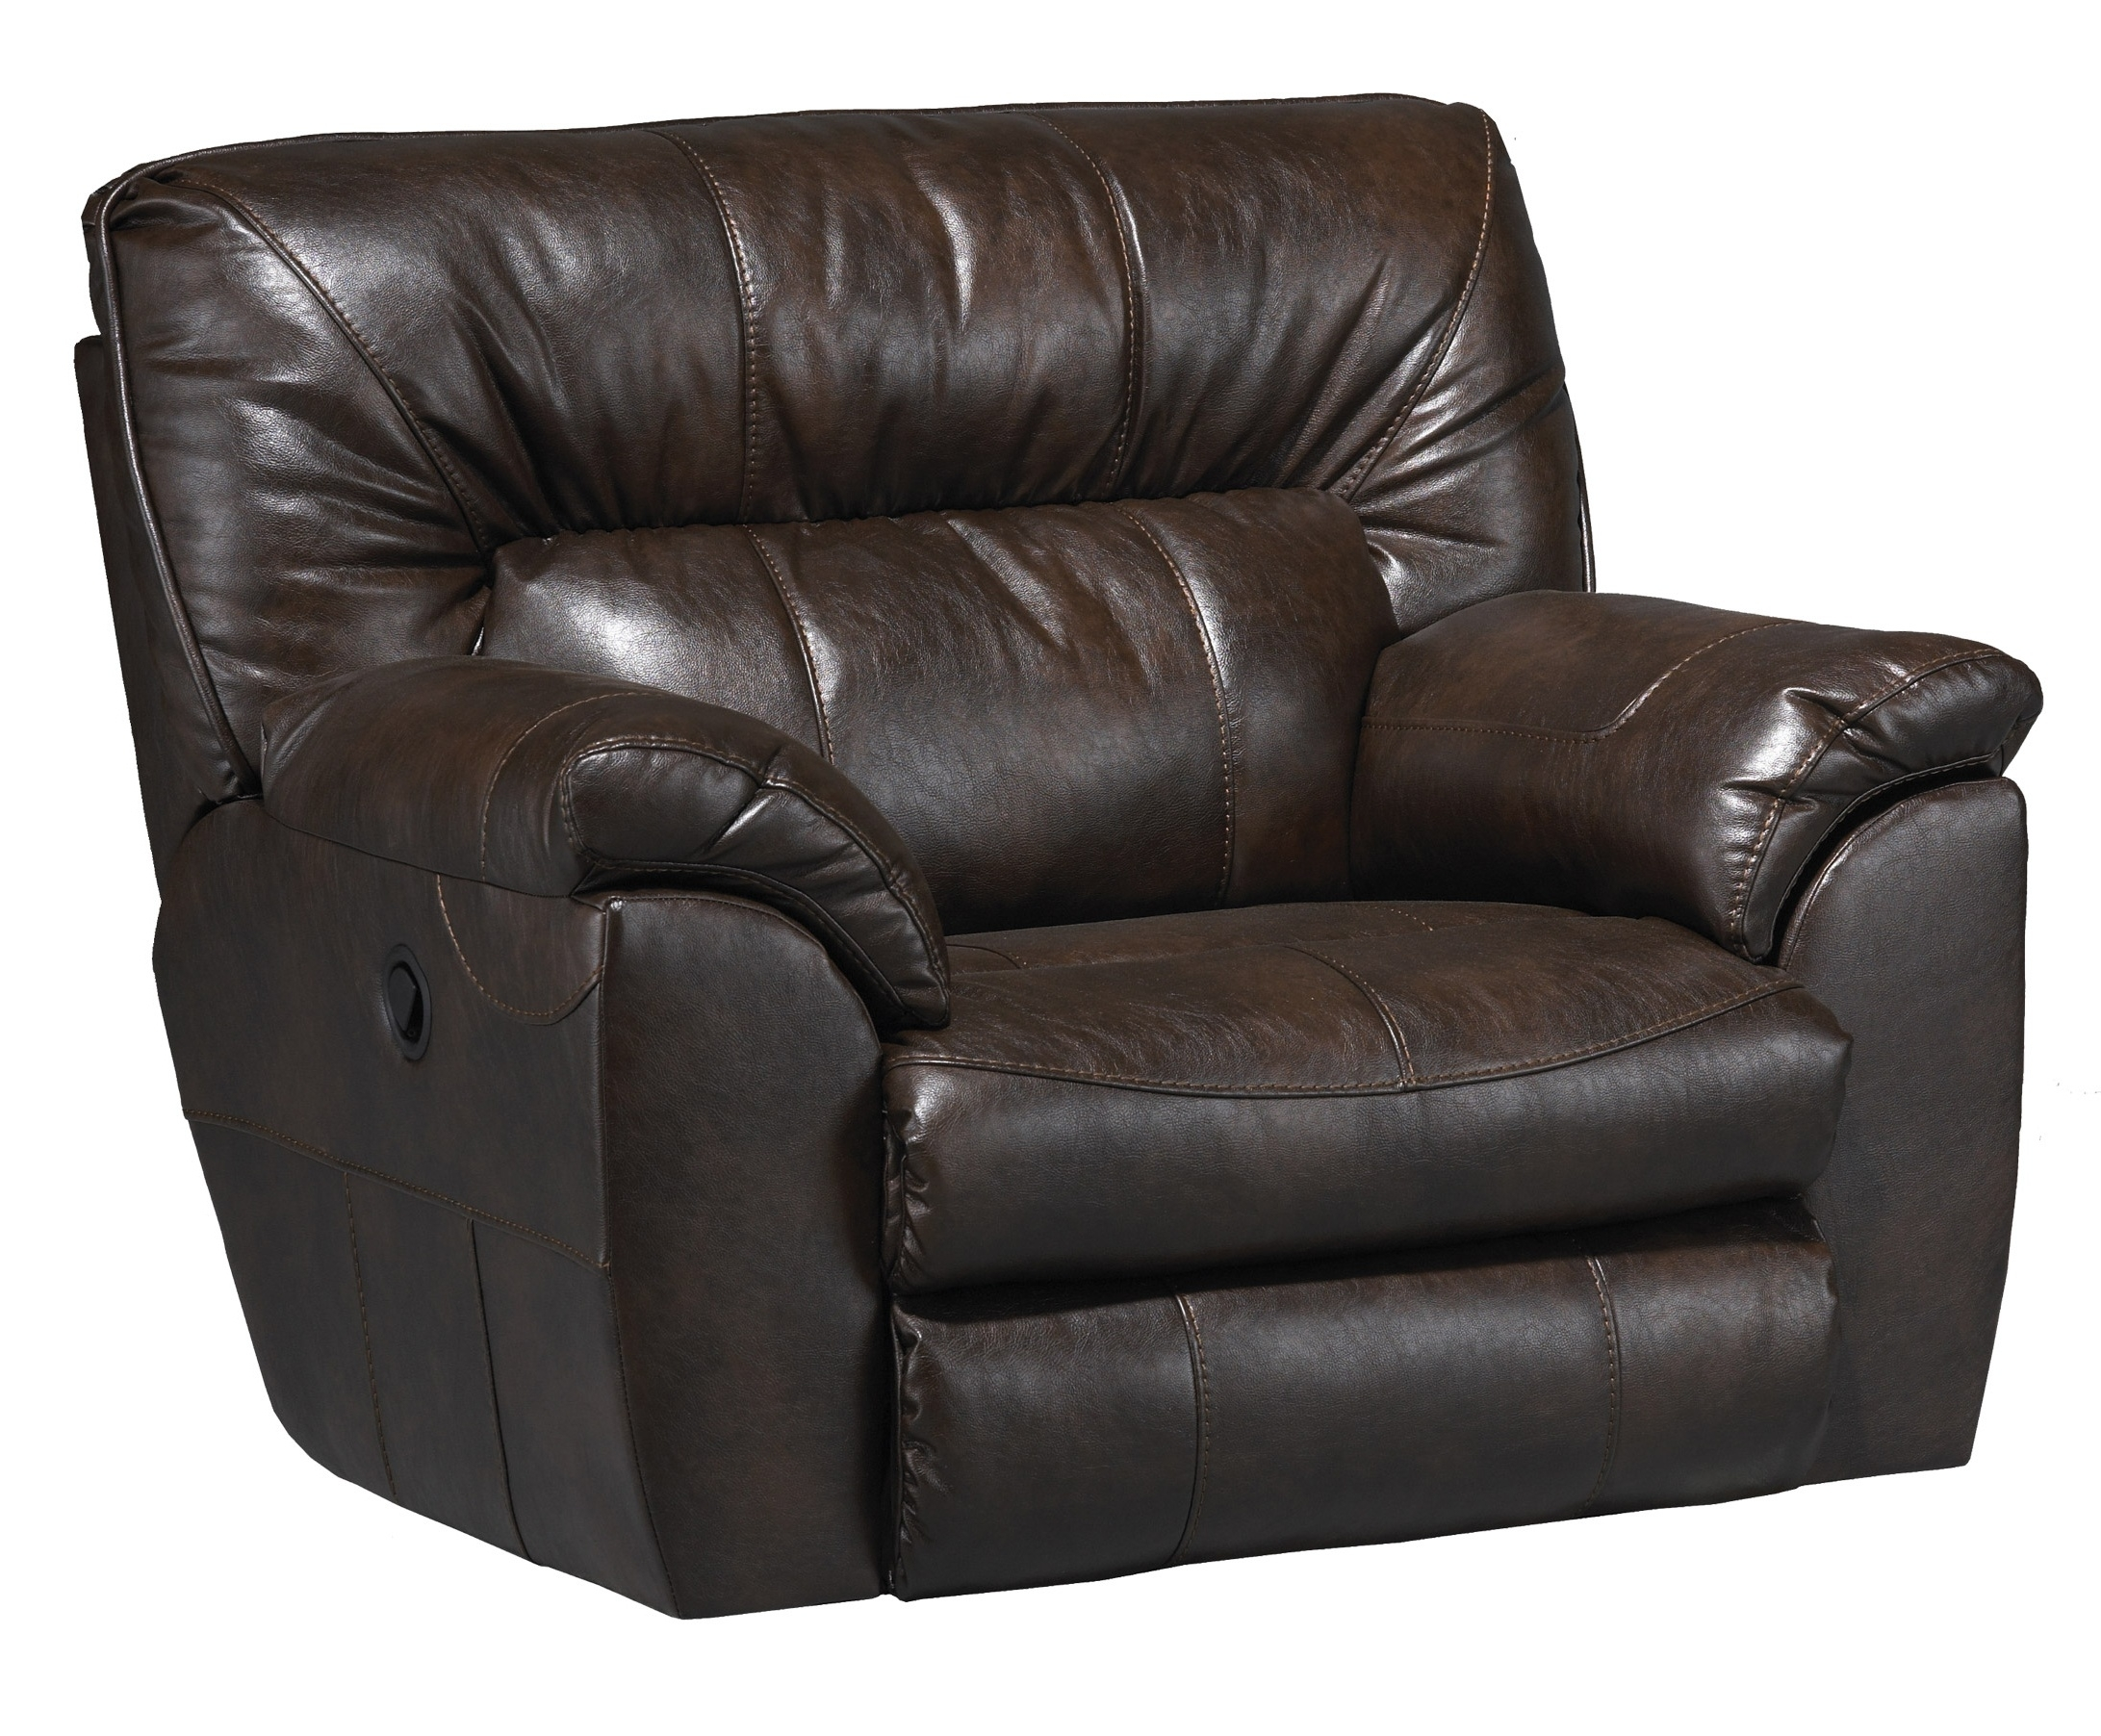 Furniture Clearance Center | Motion Groups regarding Waylon 3 Piece Power Reclining Sectionals (Image 11 of 30)